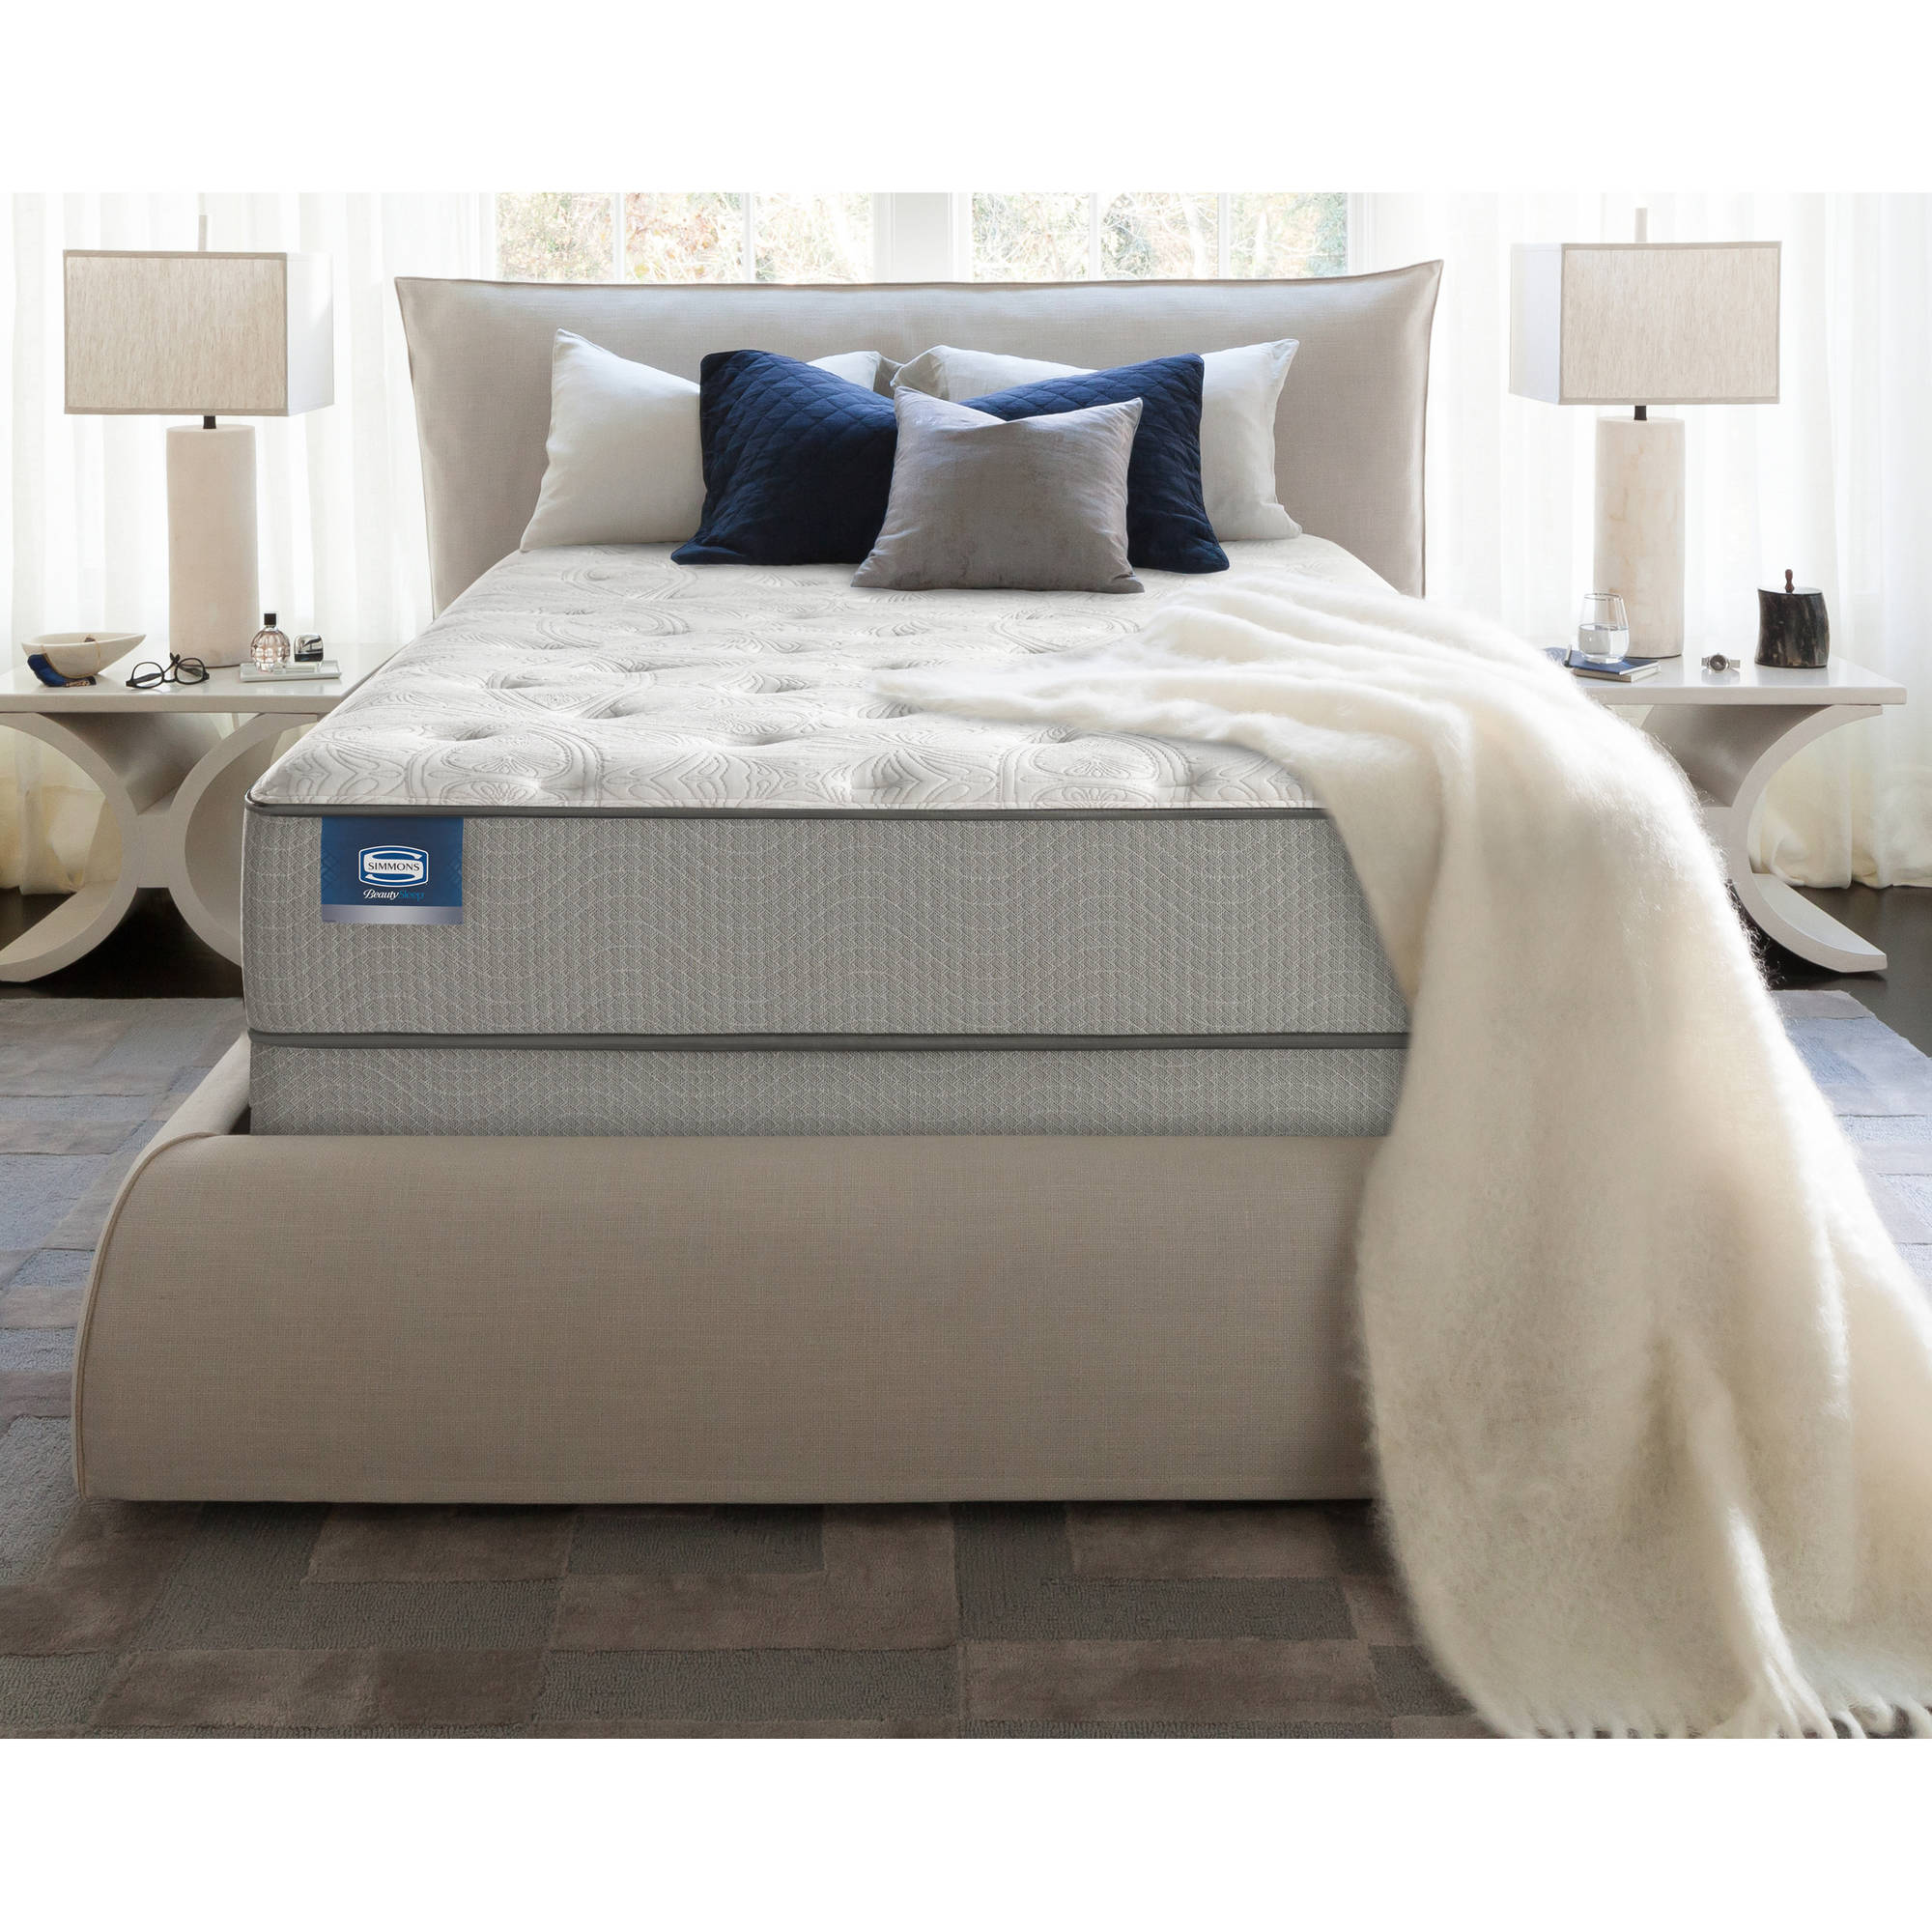 "BeautySleep Almond 14"" Luxury Firm Mattress, Multiple Sizes"